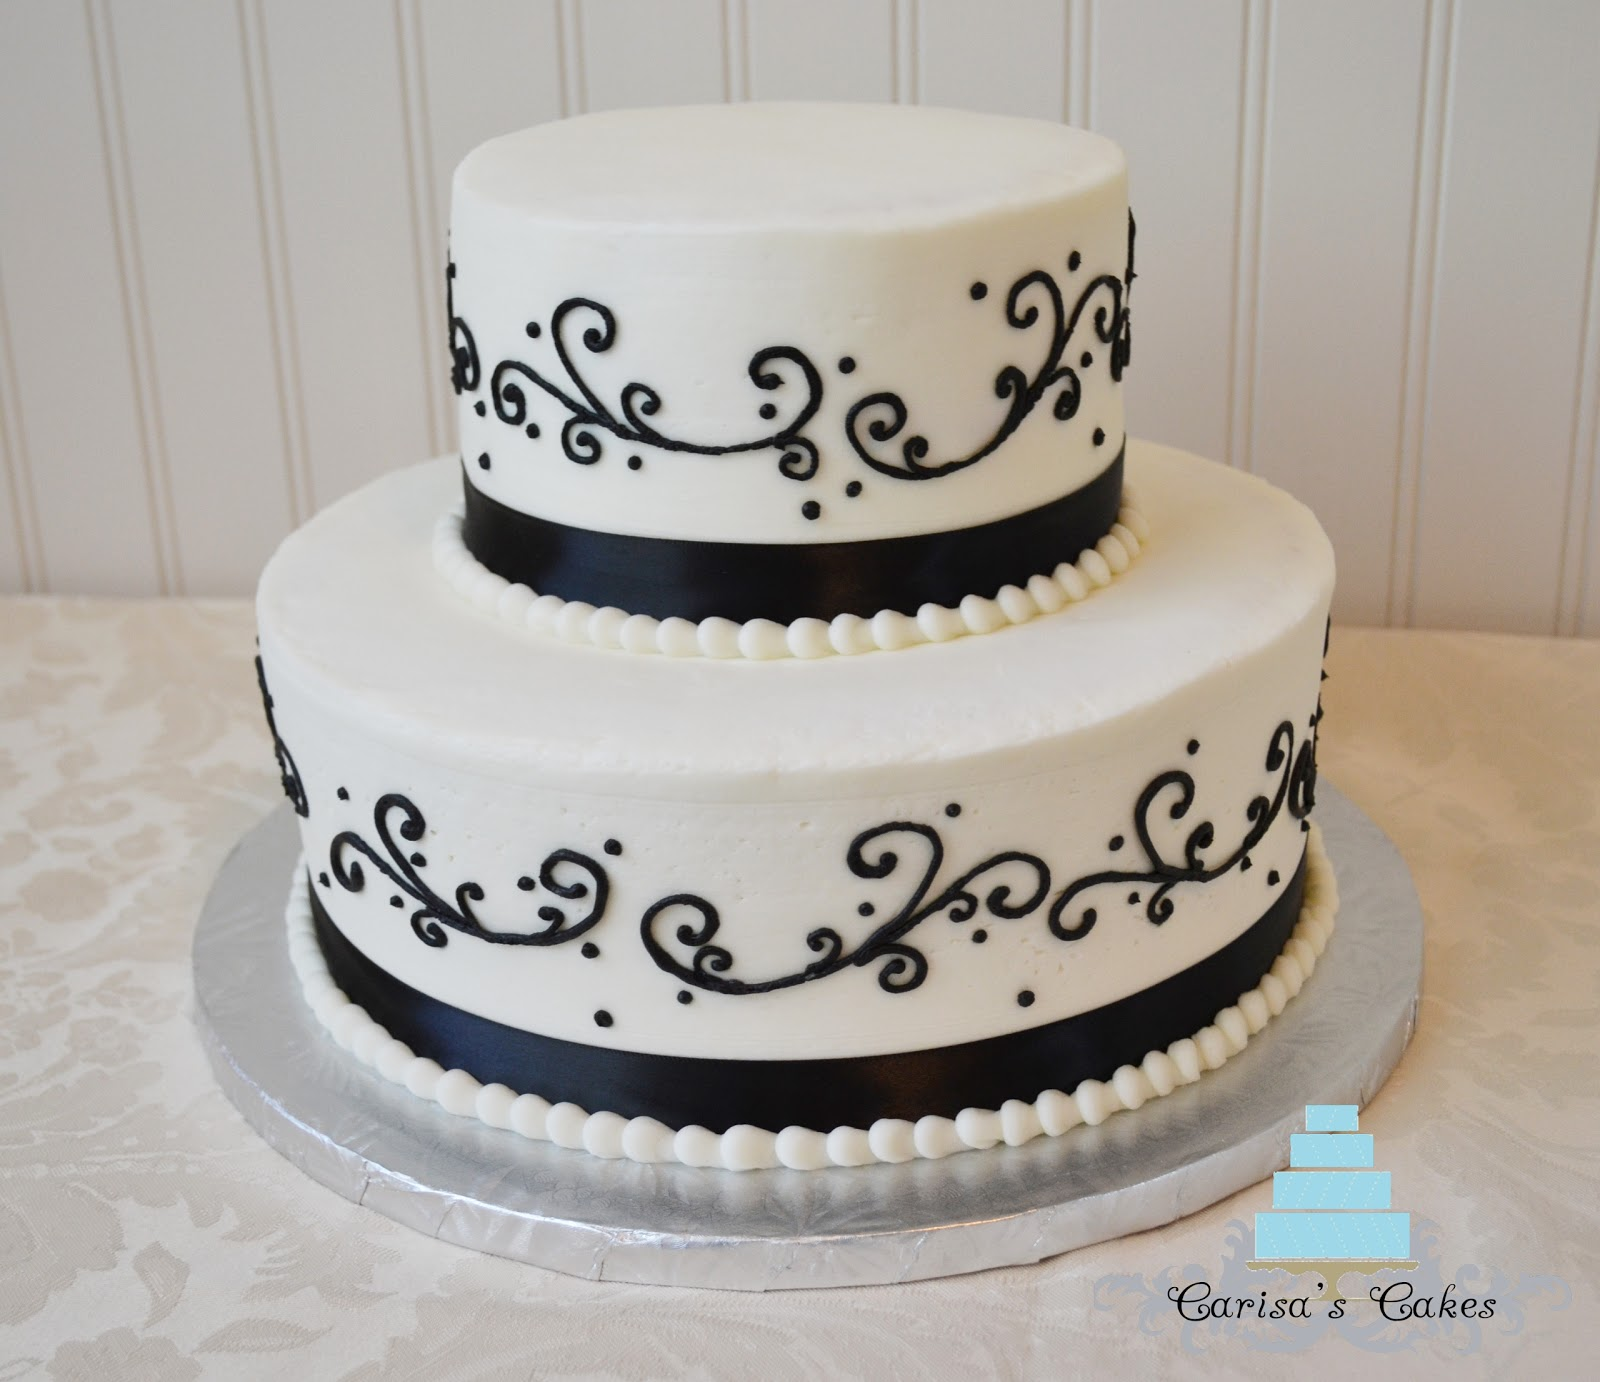 Carisas Cakes Black And White Wedding Cake